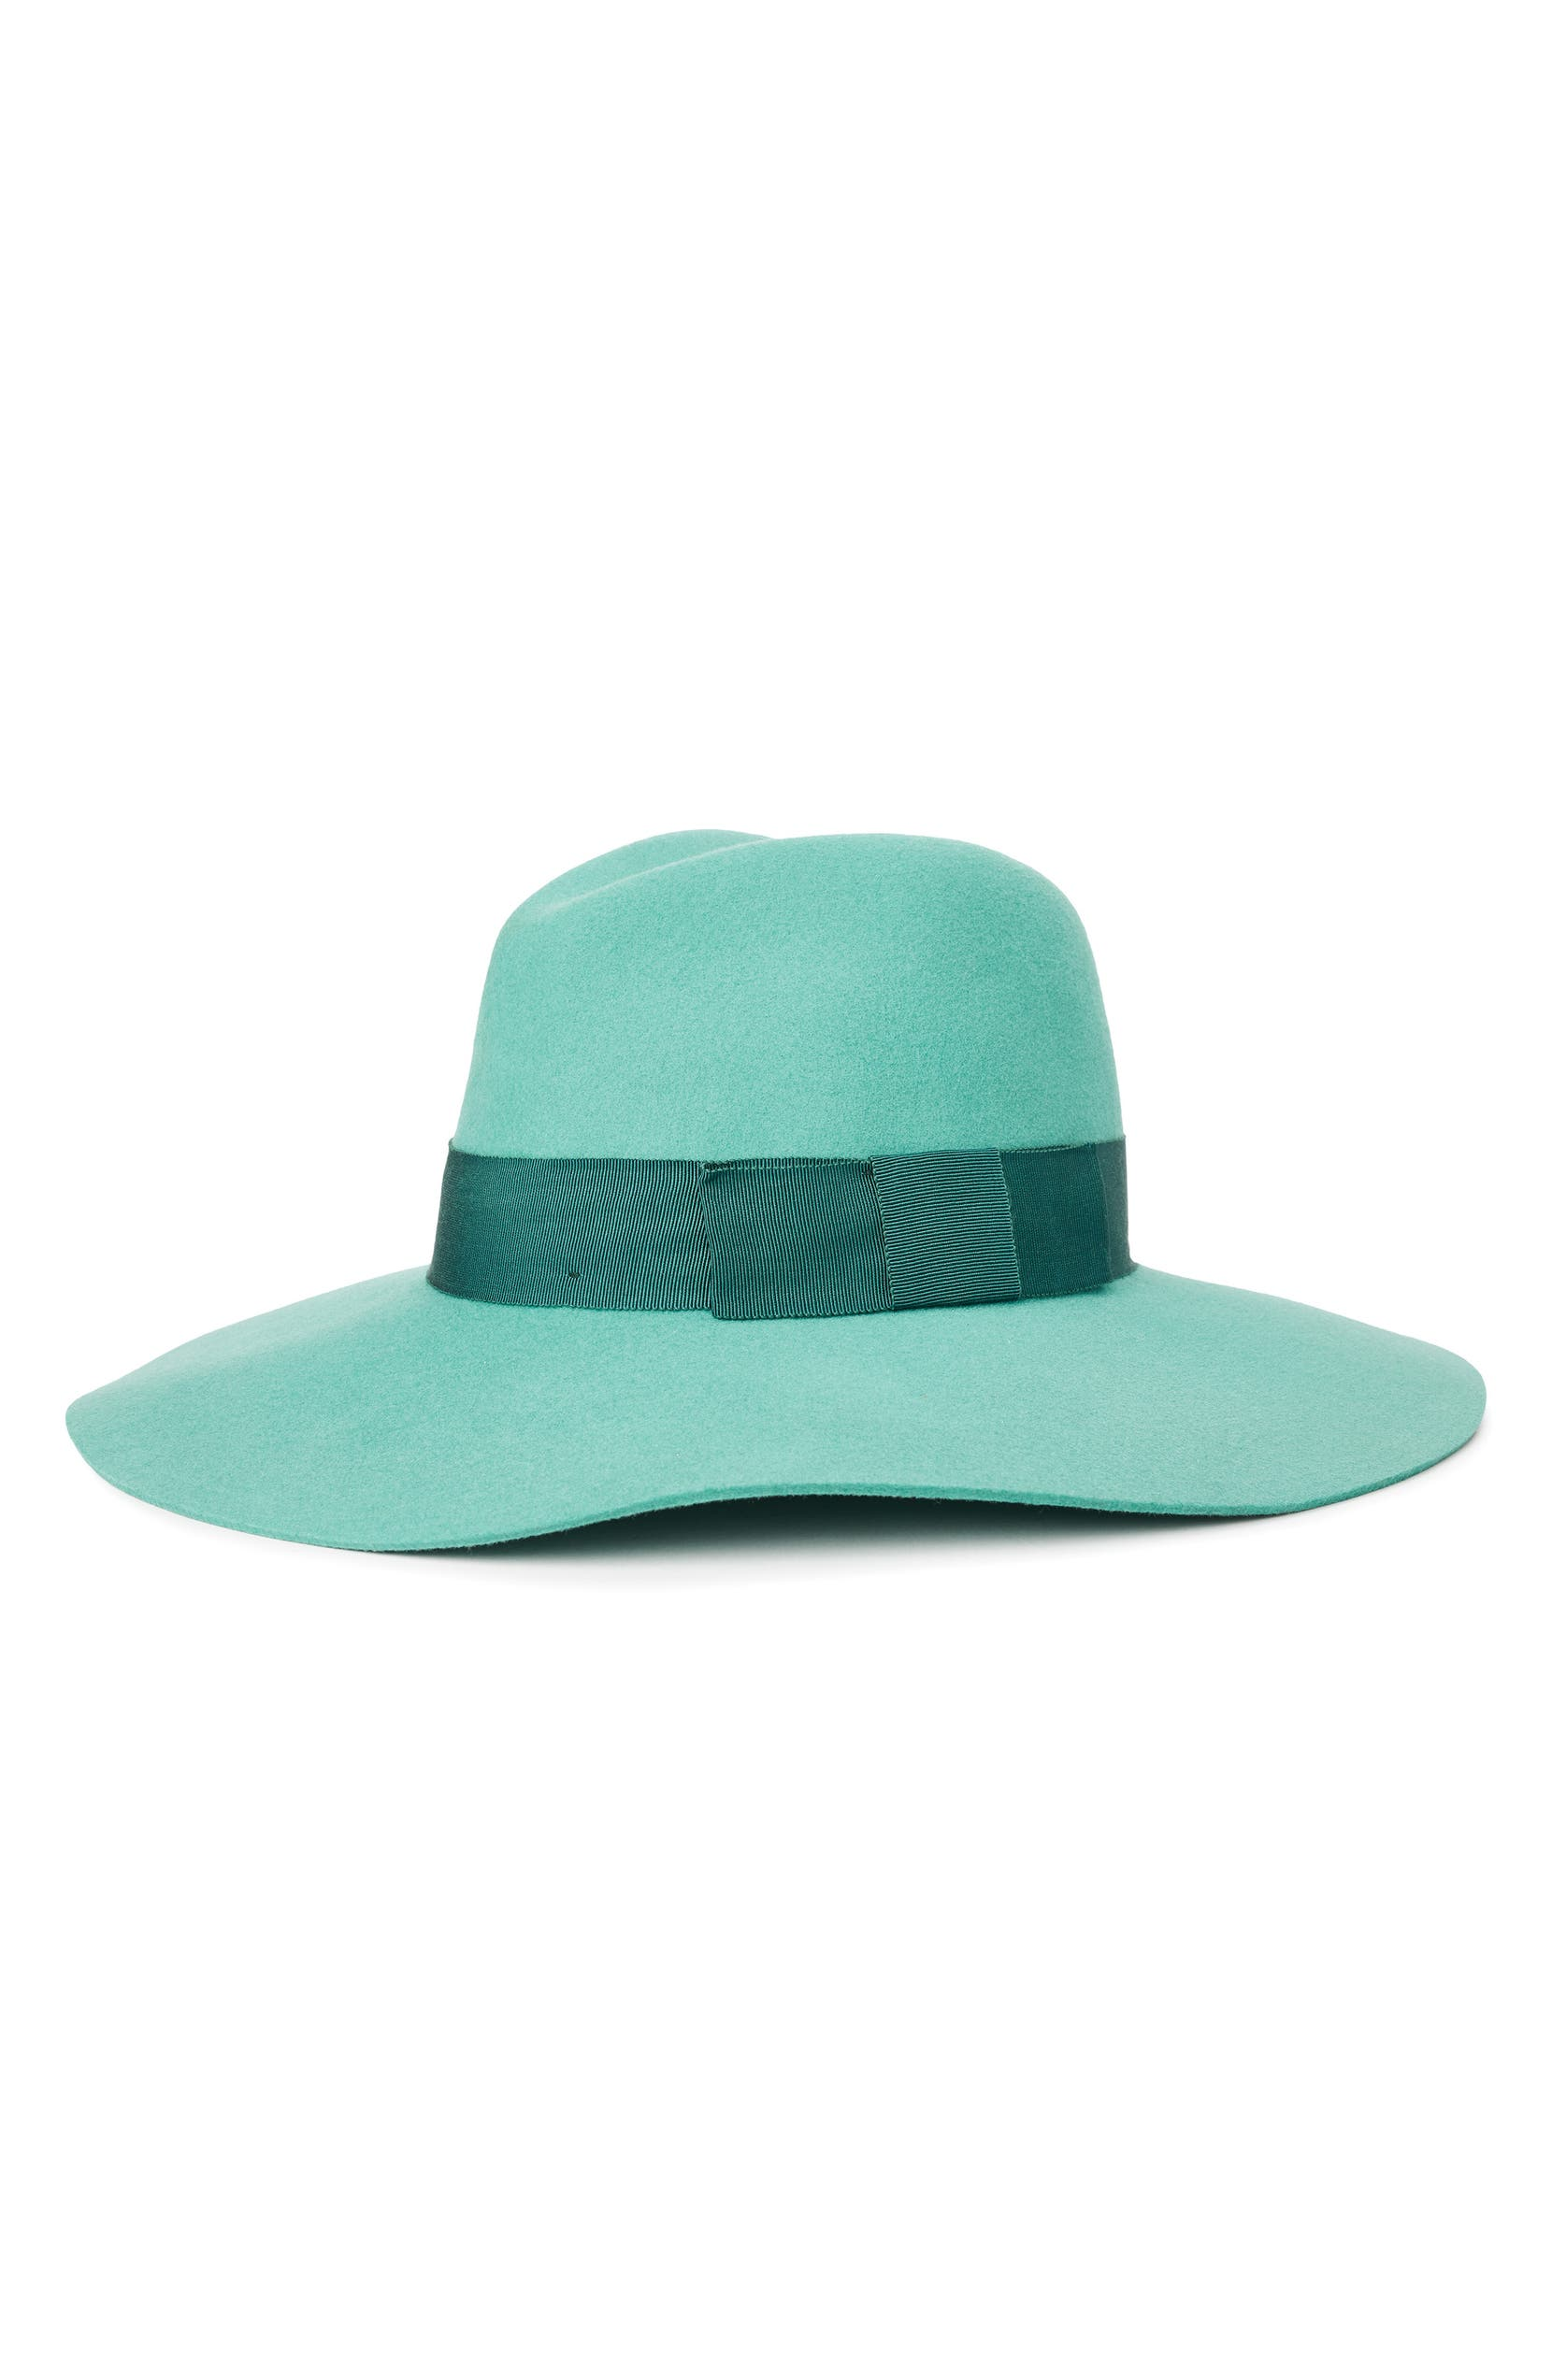 428cc39b845 Brixton 'Piper' Floppy Wool Hat | Nordstrom